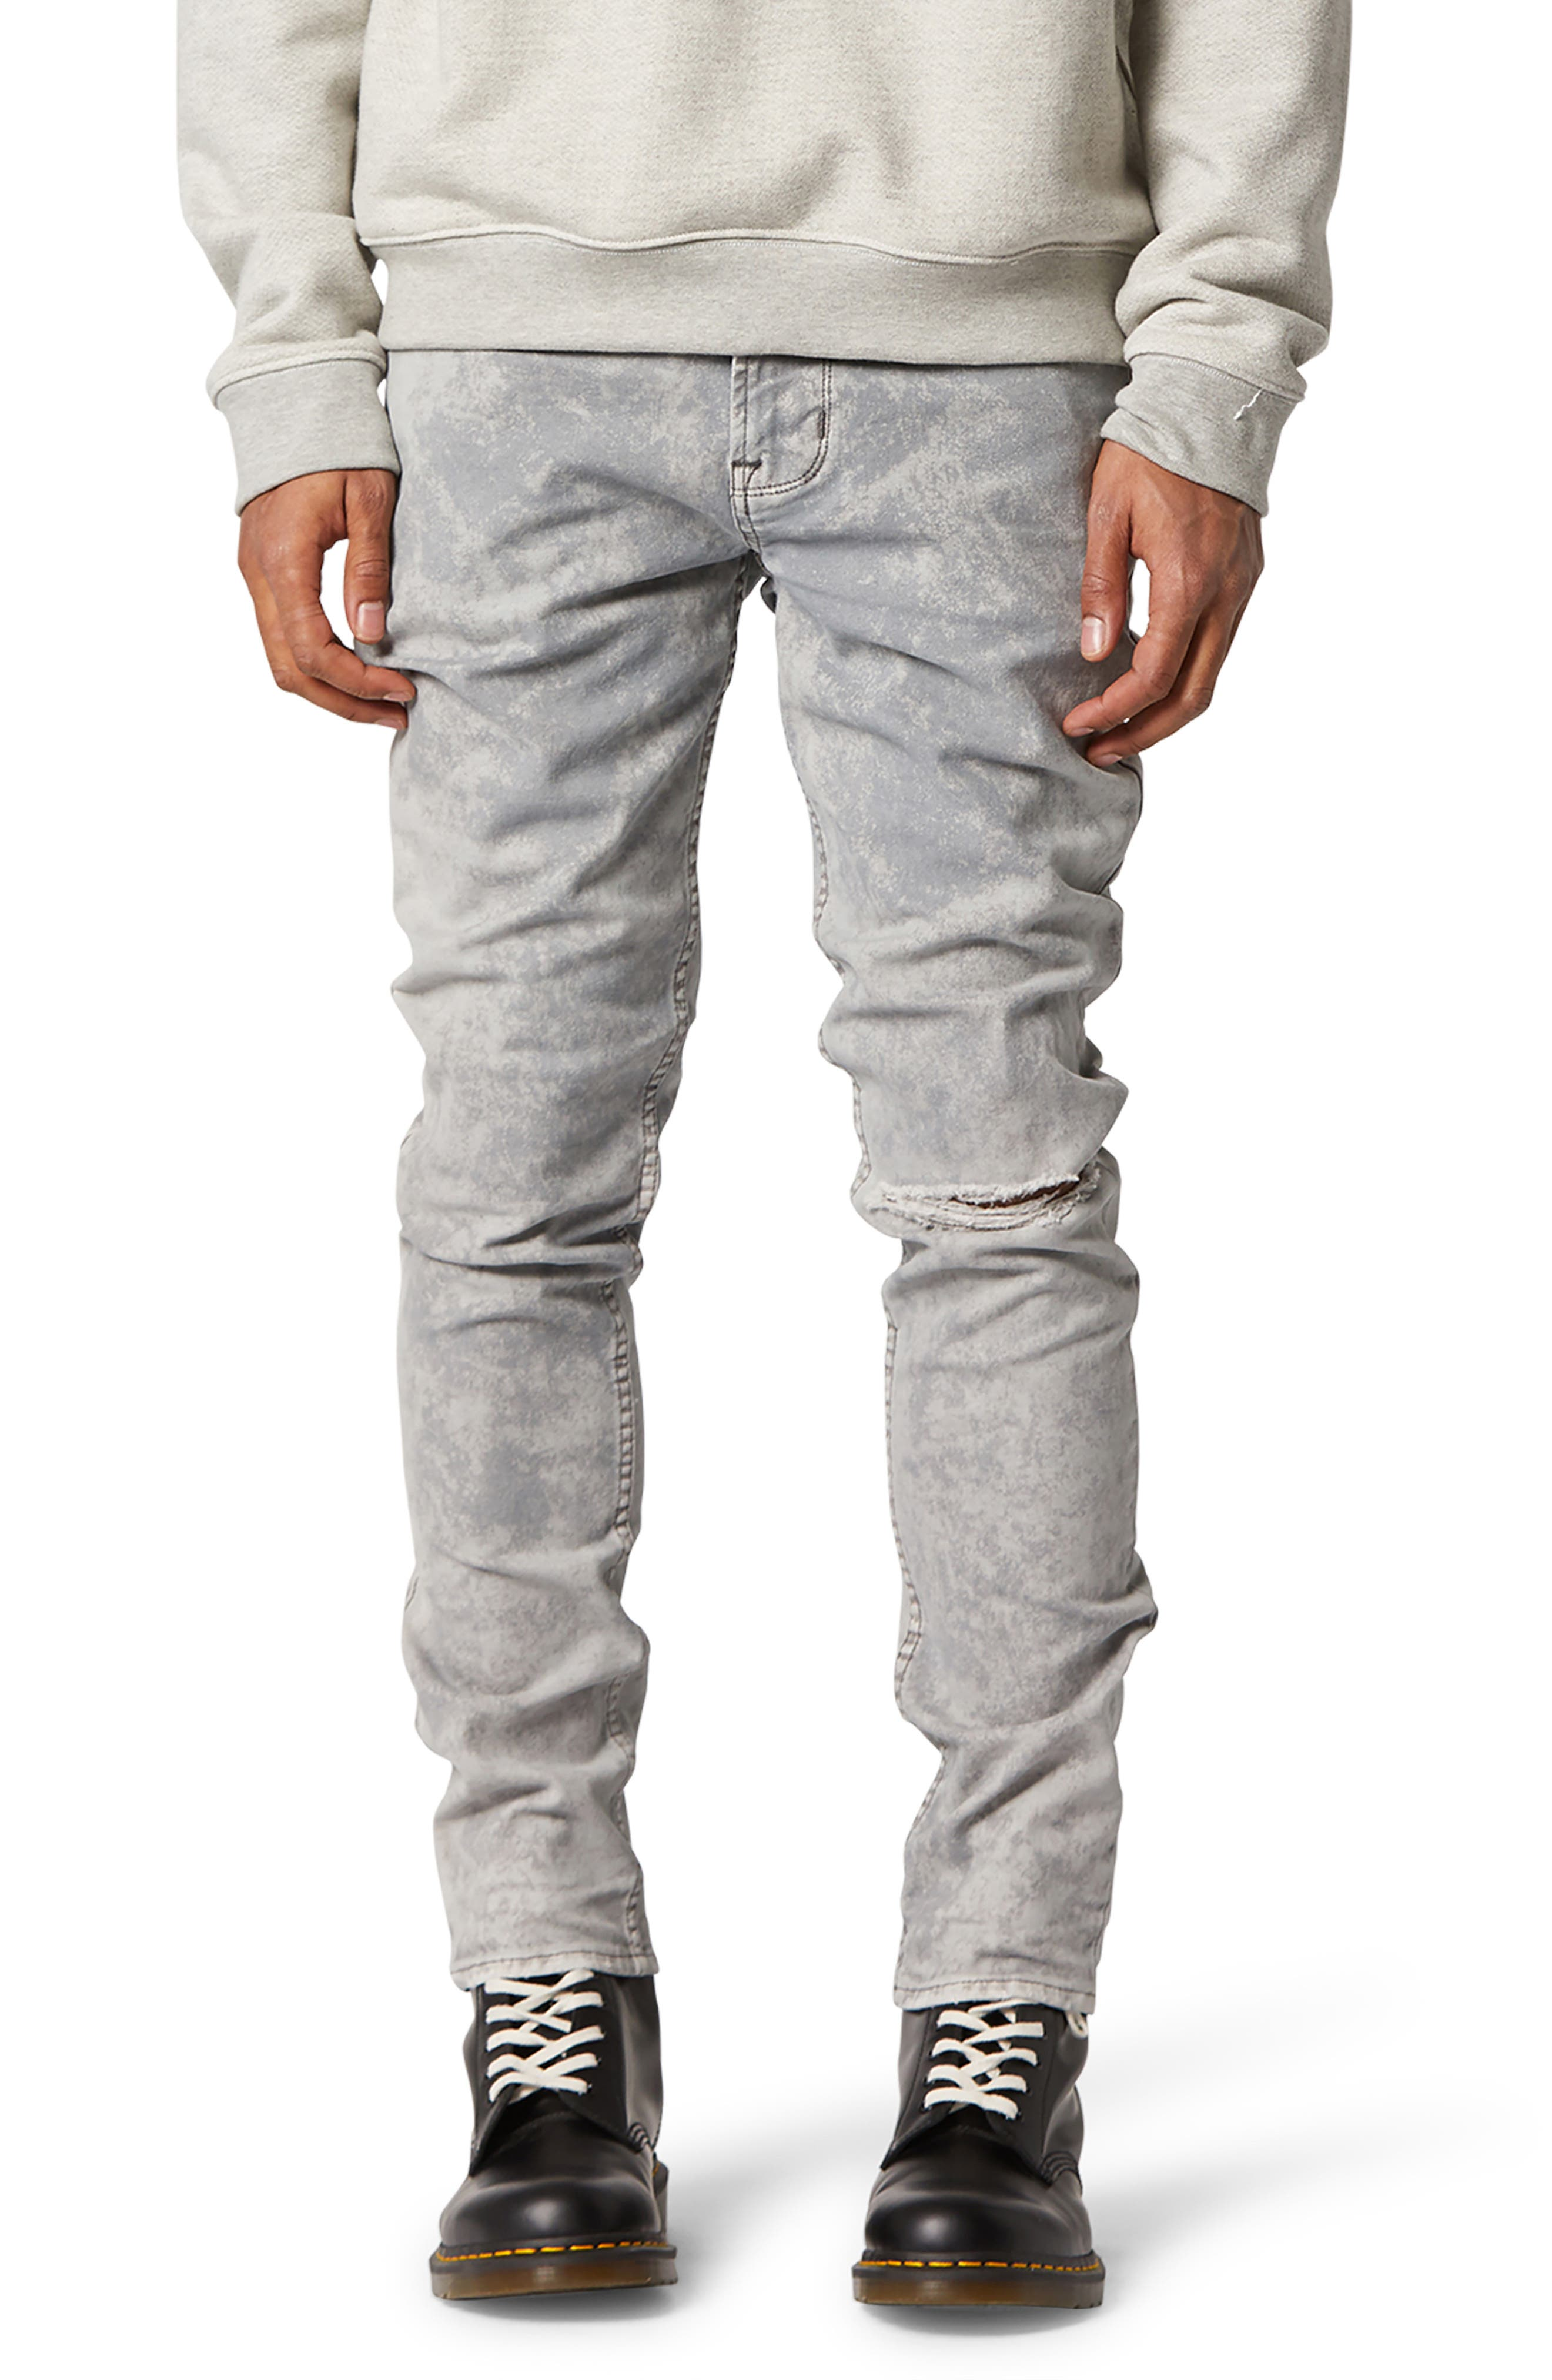 Rips, wrinkles and hard evidence of an acid fight bring unexplainable history to true skinny-fit jeans that pair mid-rise comfort with snug, tapered legs. Style Name: Hudson Jeans Axl Ripped Skinny Jeans (Grey Acid). Style Number: 6030638. Available in stores.